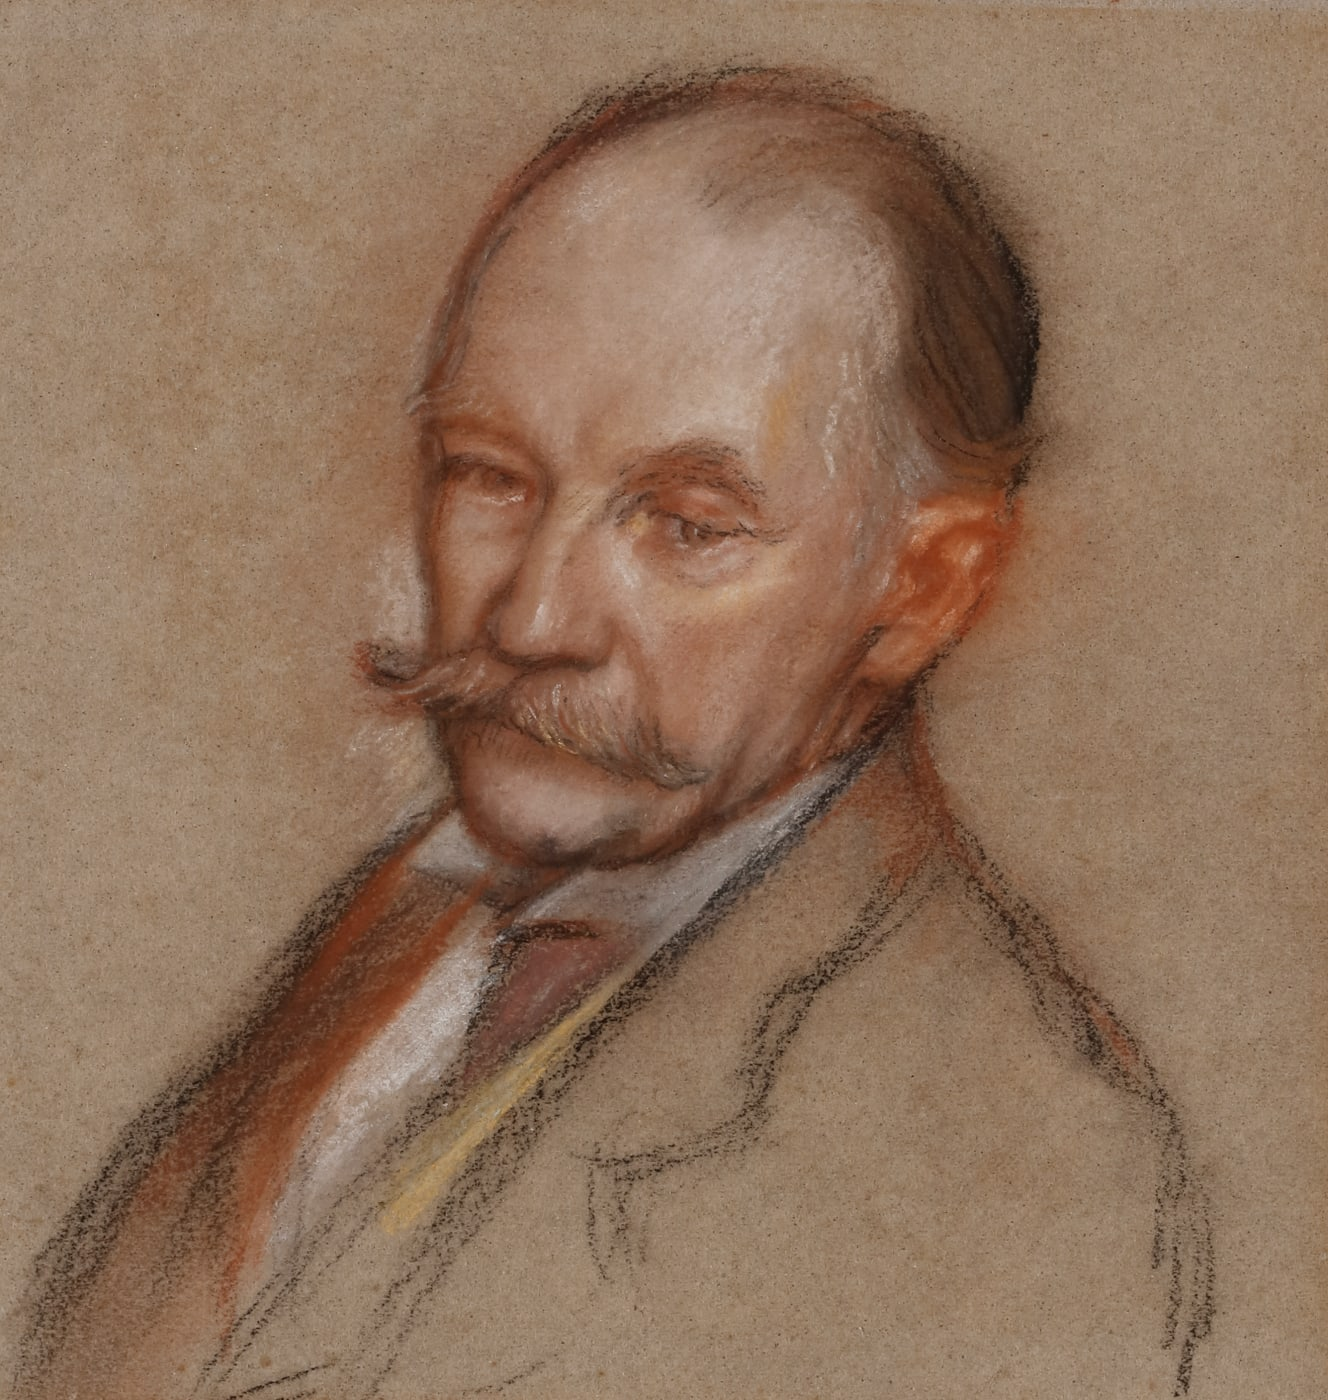 Portrait drawing of the writer Thomas Hardy, by Sir William Rothenstein.